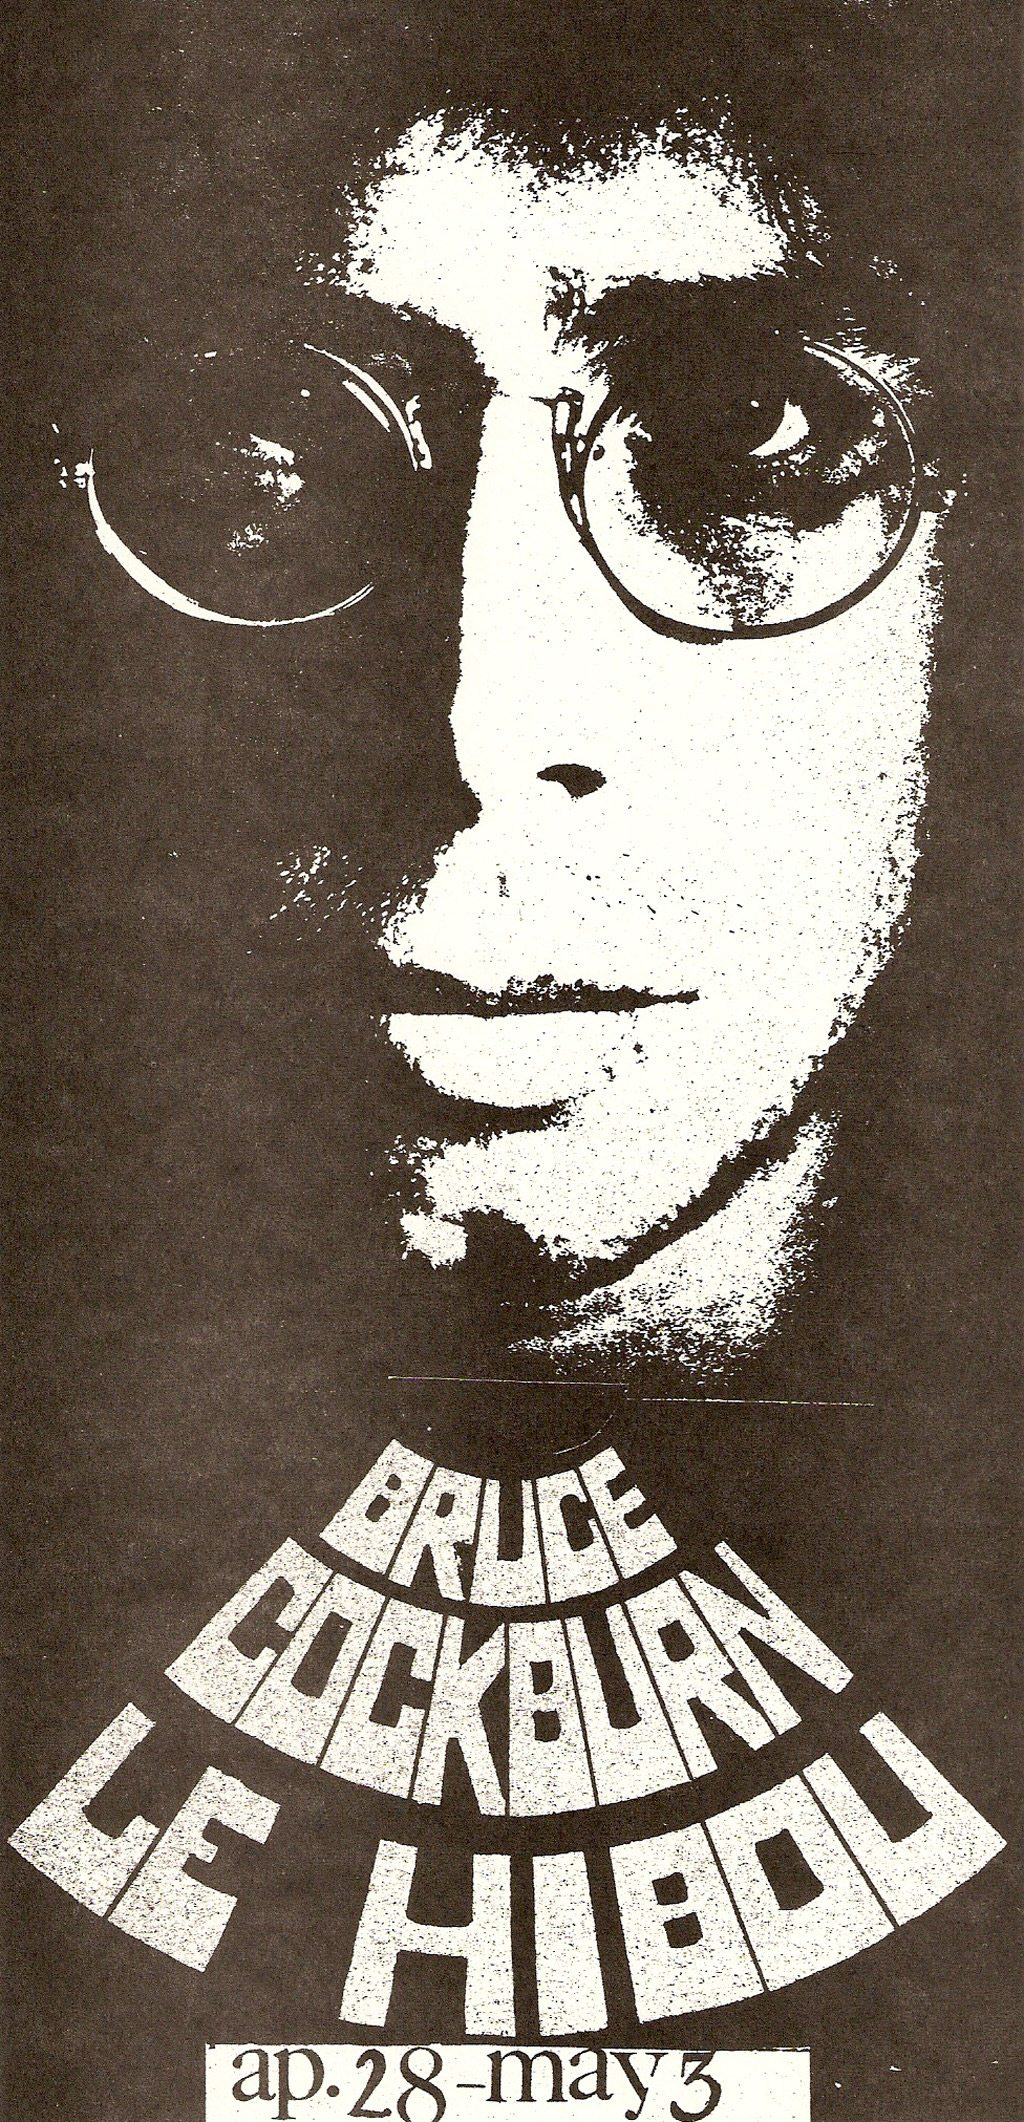 A poster from Bruce Cockburn's concert at Le Hibou